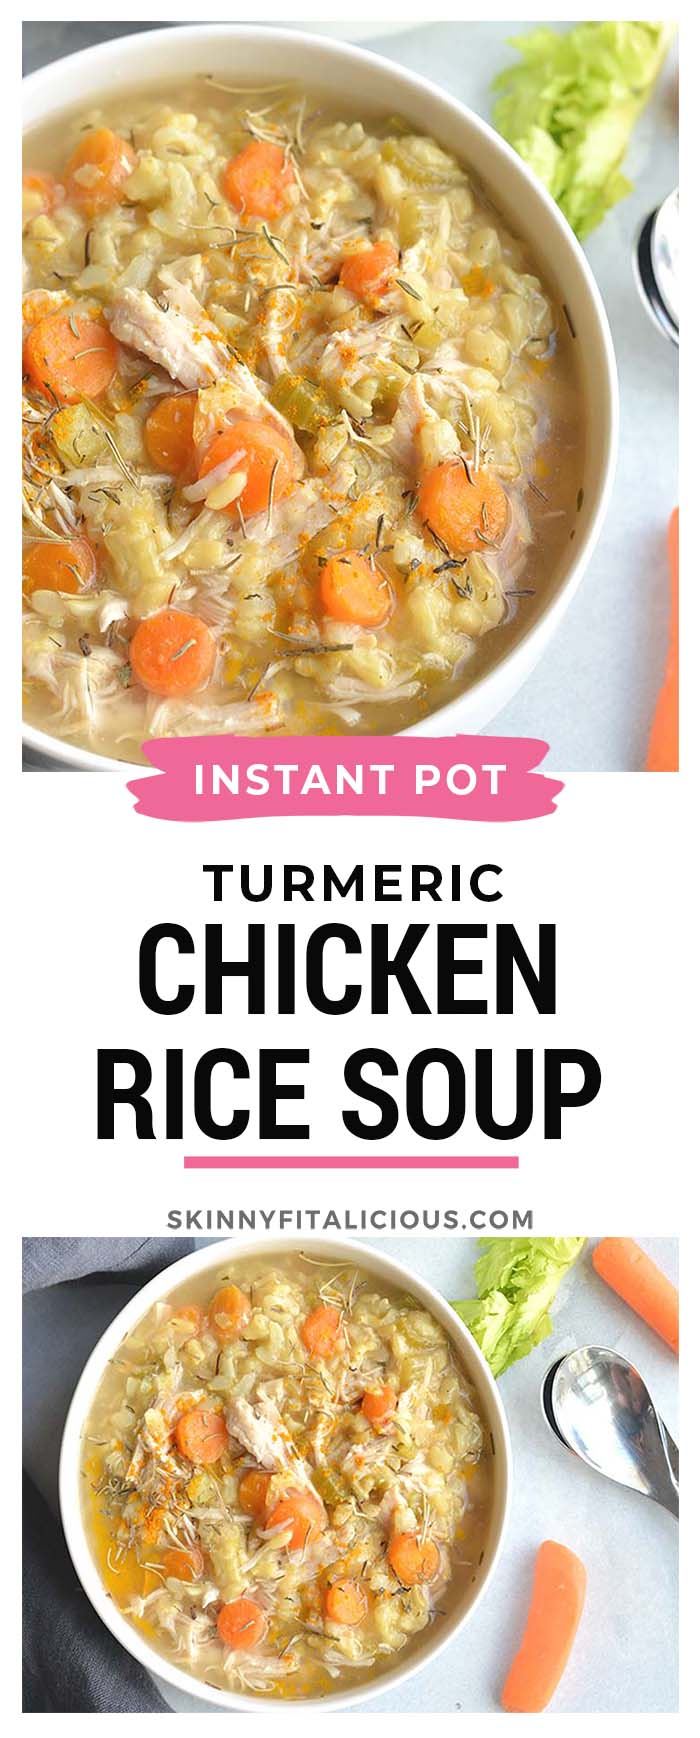 Instant Pot Turmeric Chicken Rice Soup Gf Low Cal